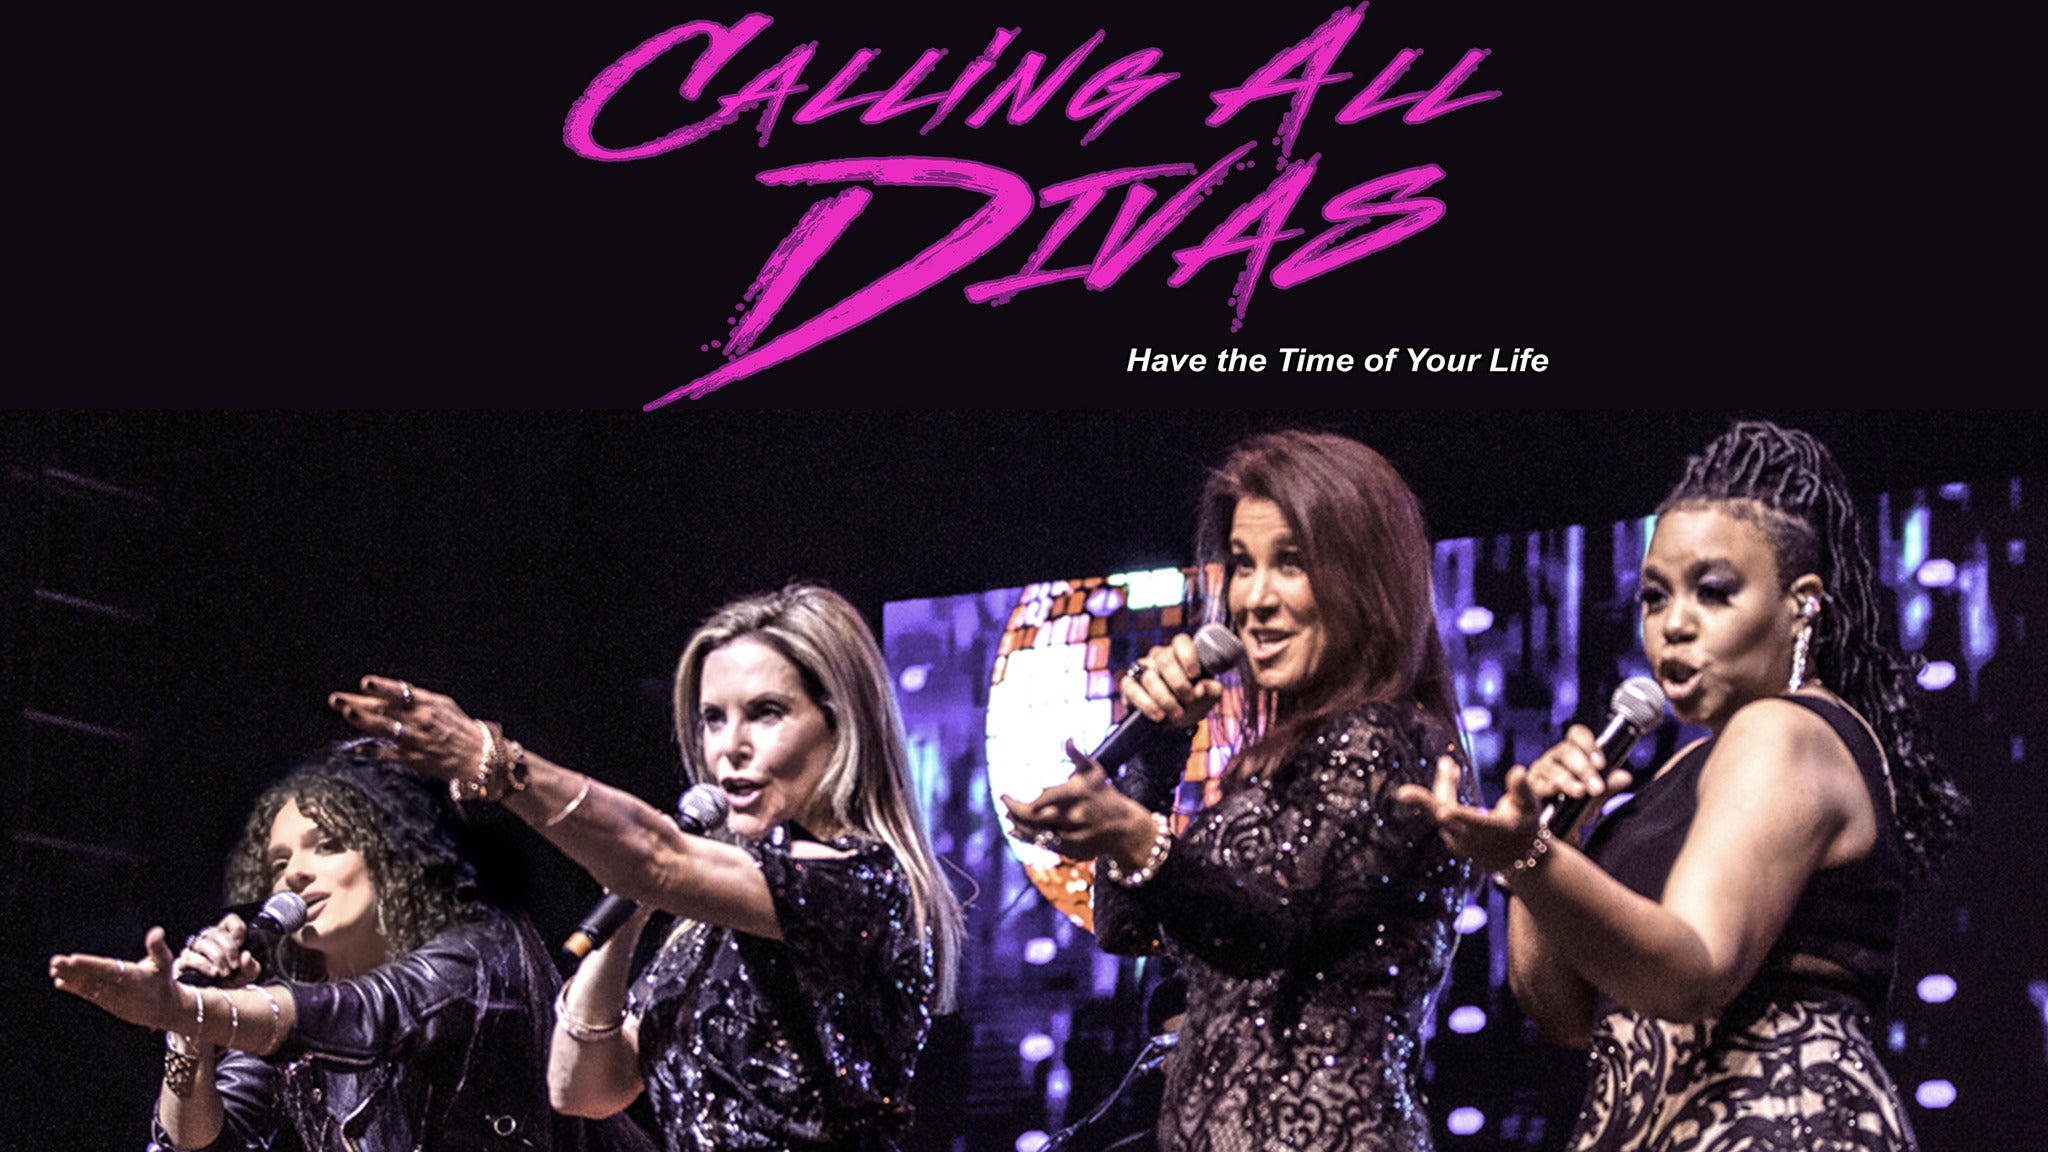 Calling All Divas at The Peabody Daytona Beach